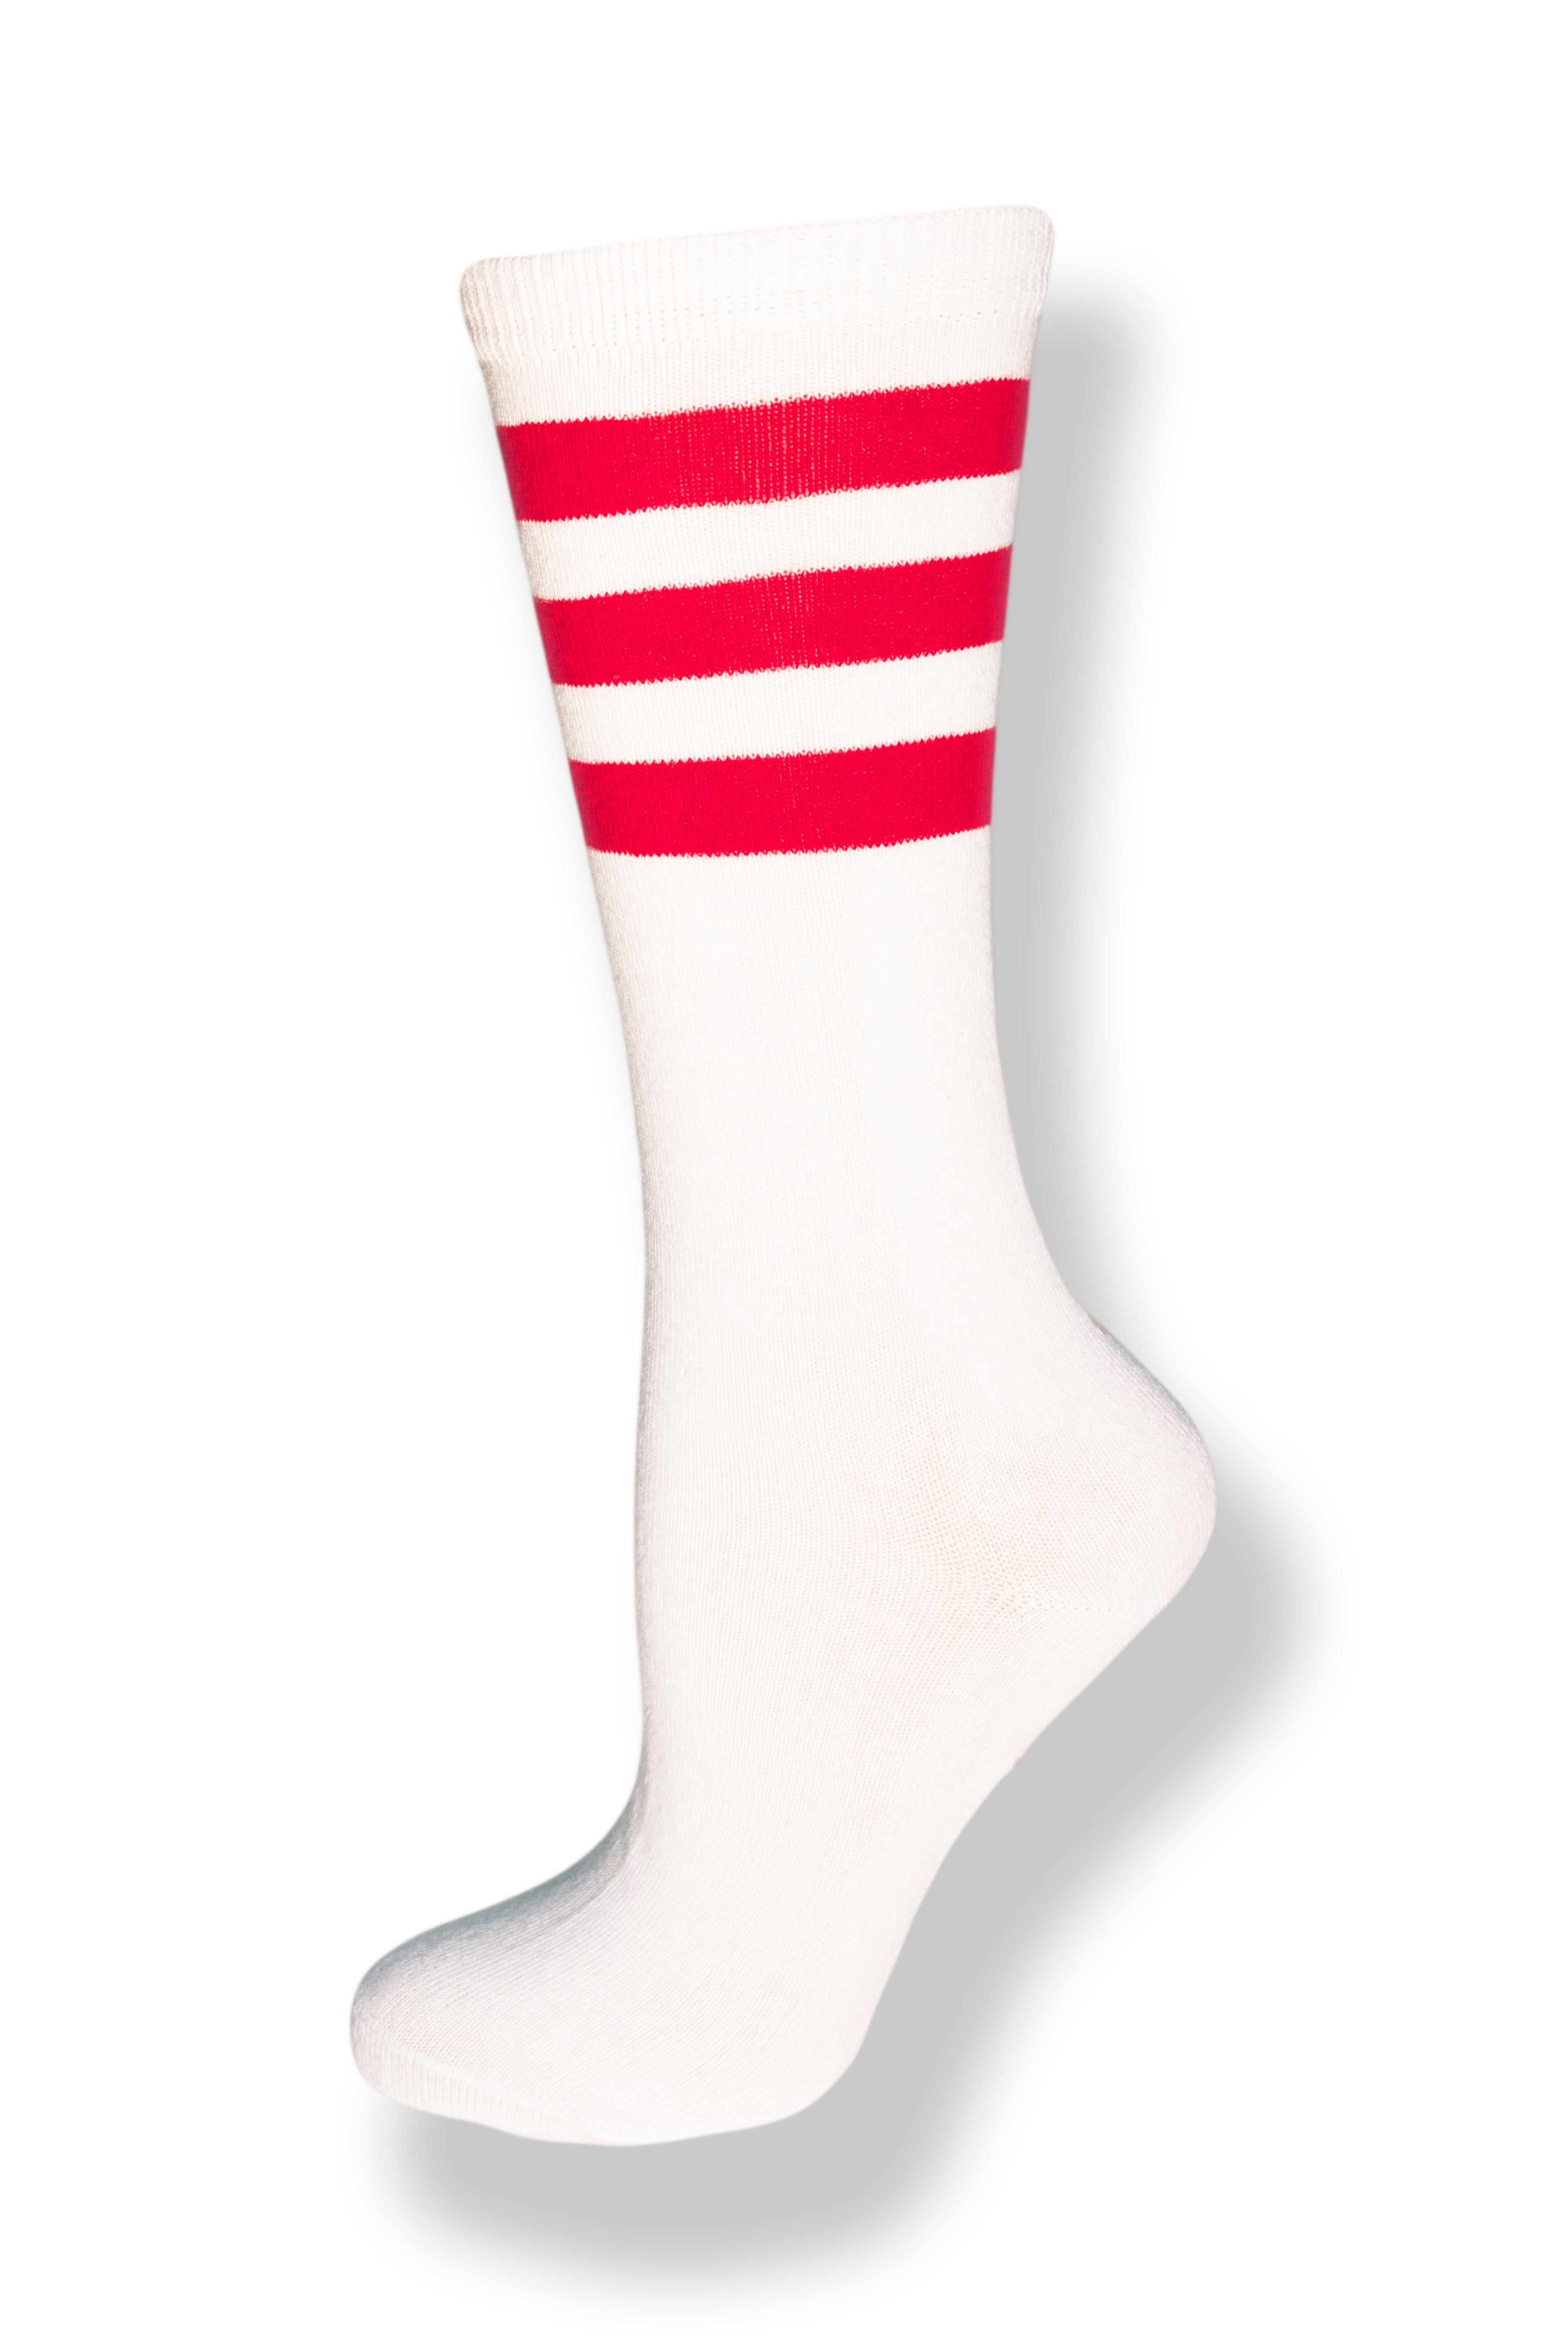 Calf high crew cut white sock with three red stripes